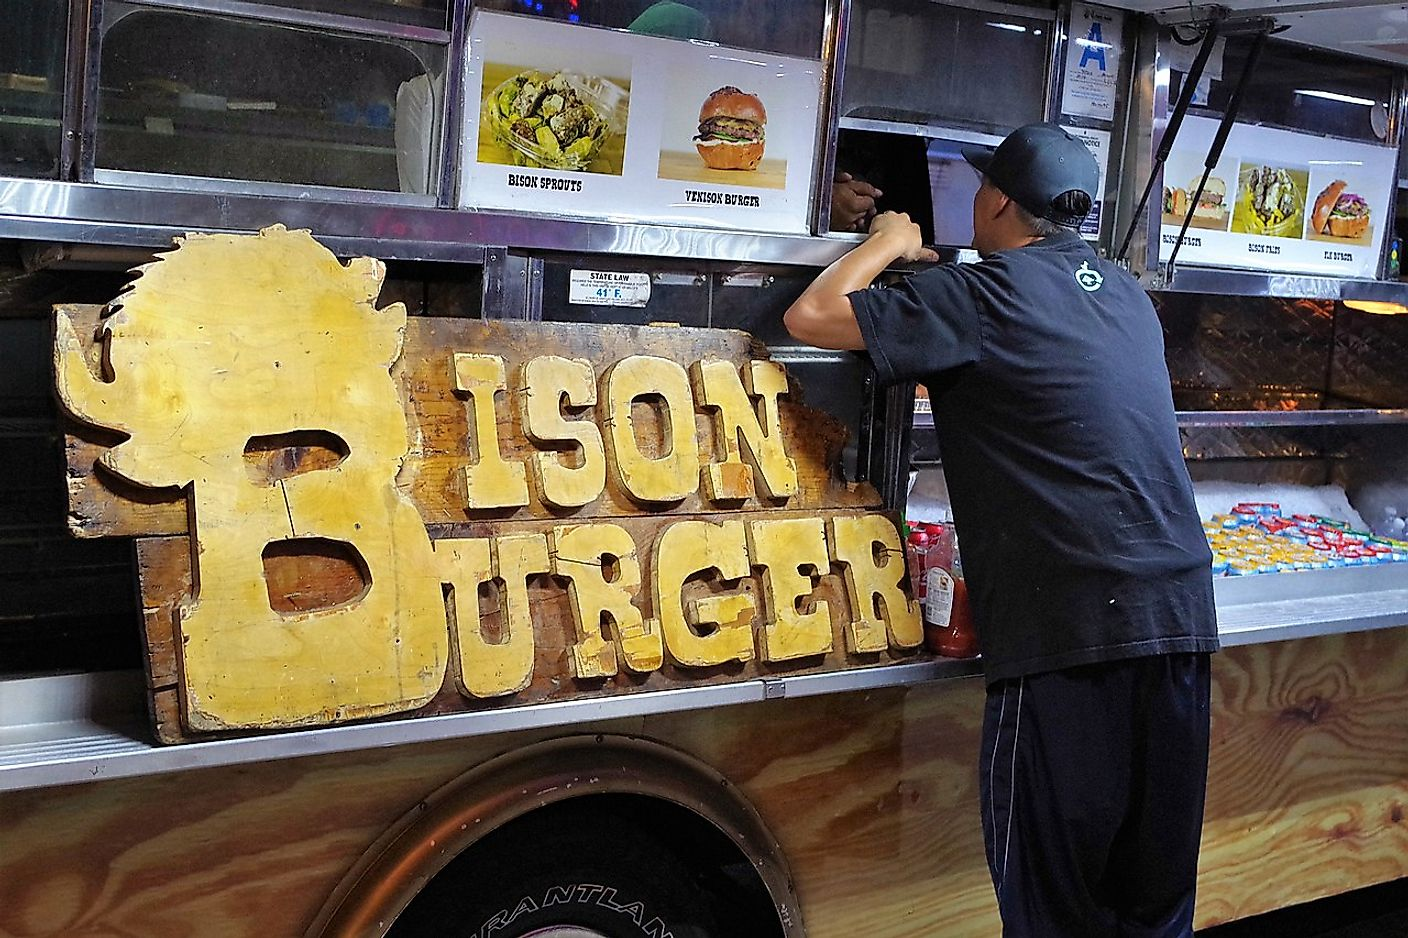 Man ordering a Bison Burger with a side of sprouts at the Bison all meat food truck. Image credit: joey  zanotti from Rancho Palos Verdes, CA, USA